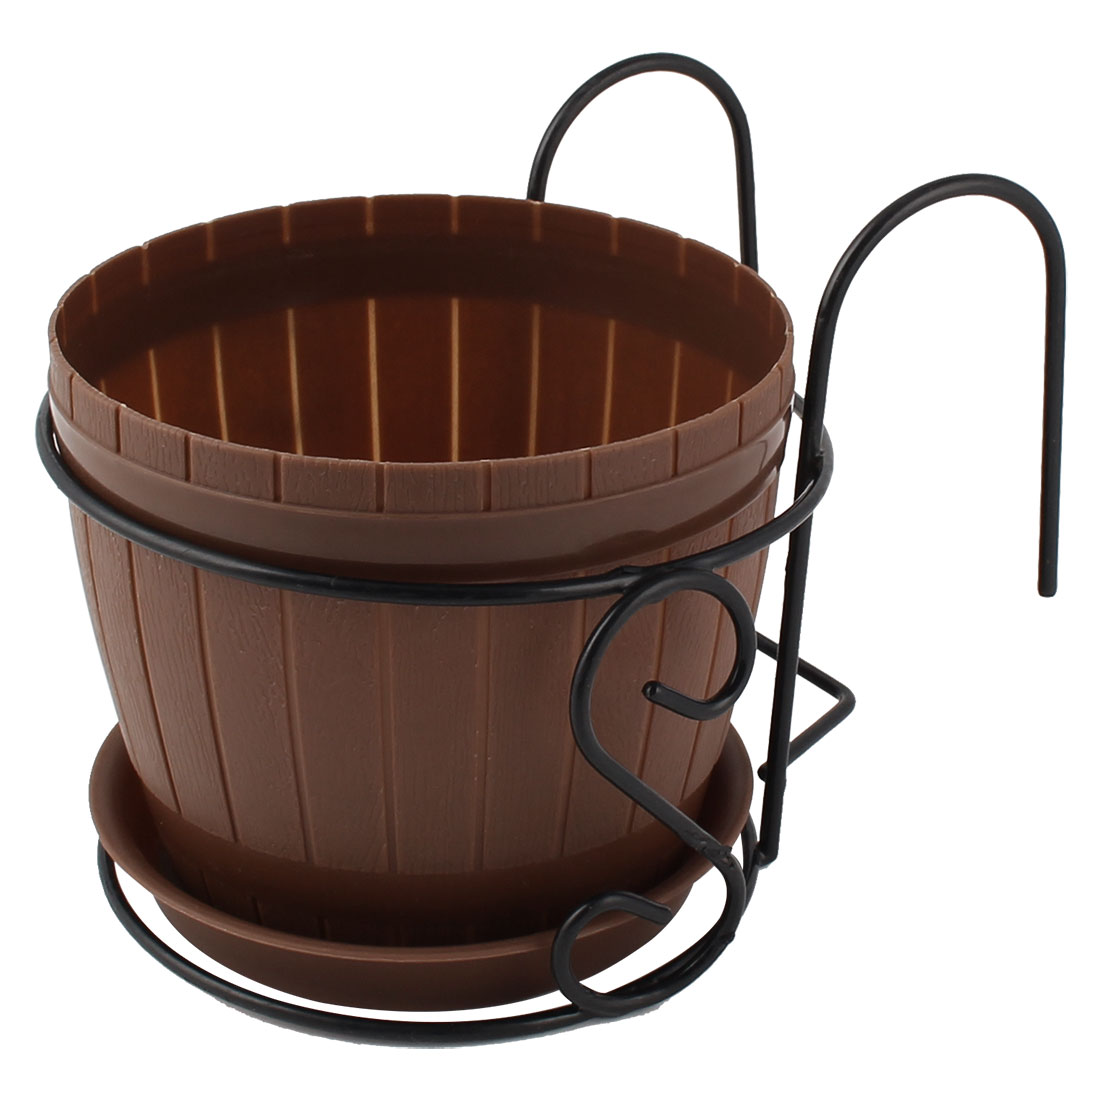 Home Balcony Garden Metal Rack Plastic Bucket Shaped Plant Flower Pot Brown Black